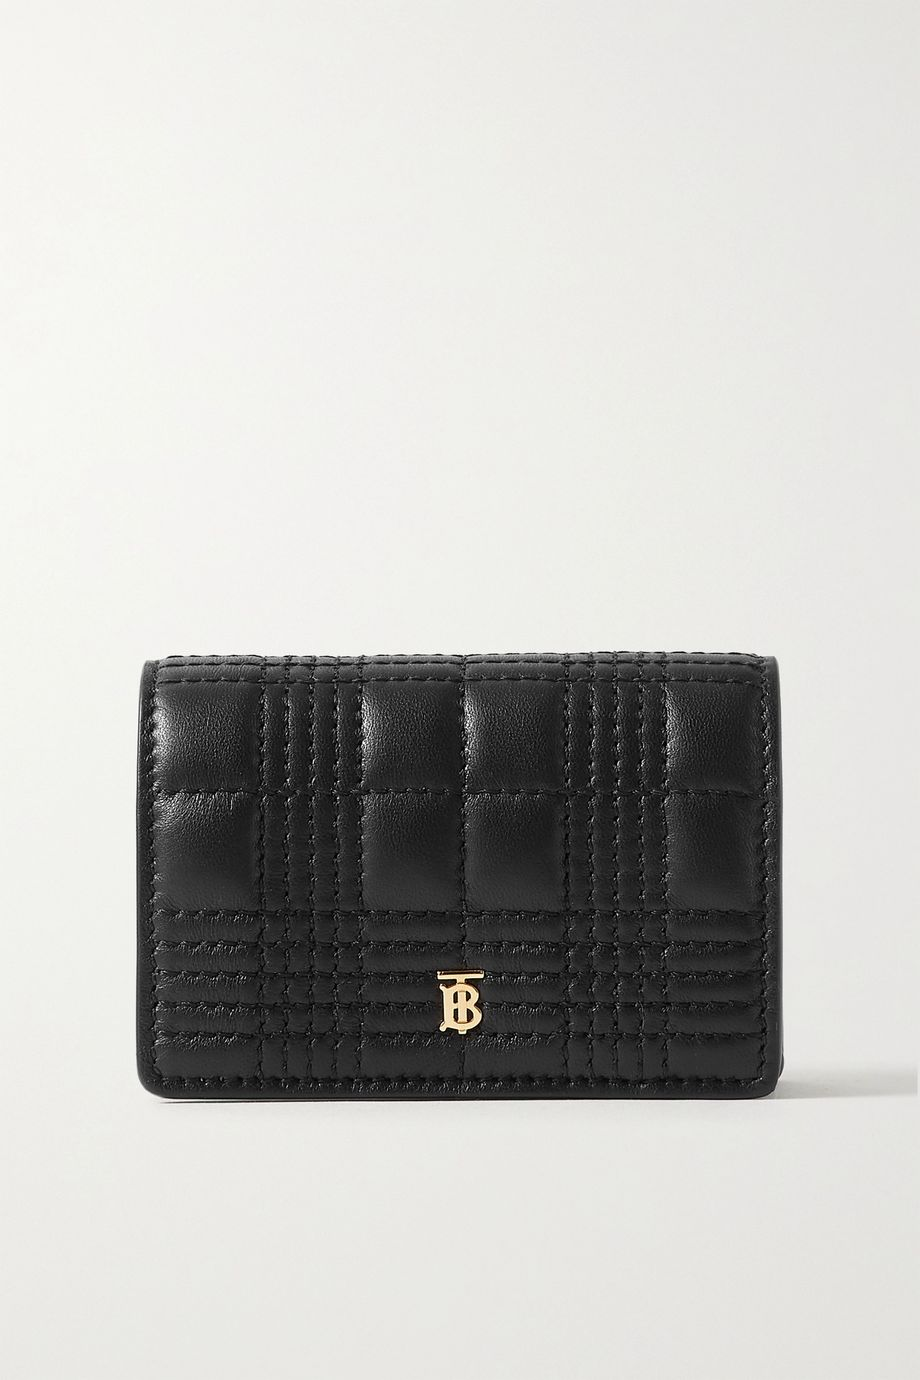 Burberry Quilted leather cardholder